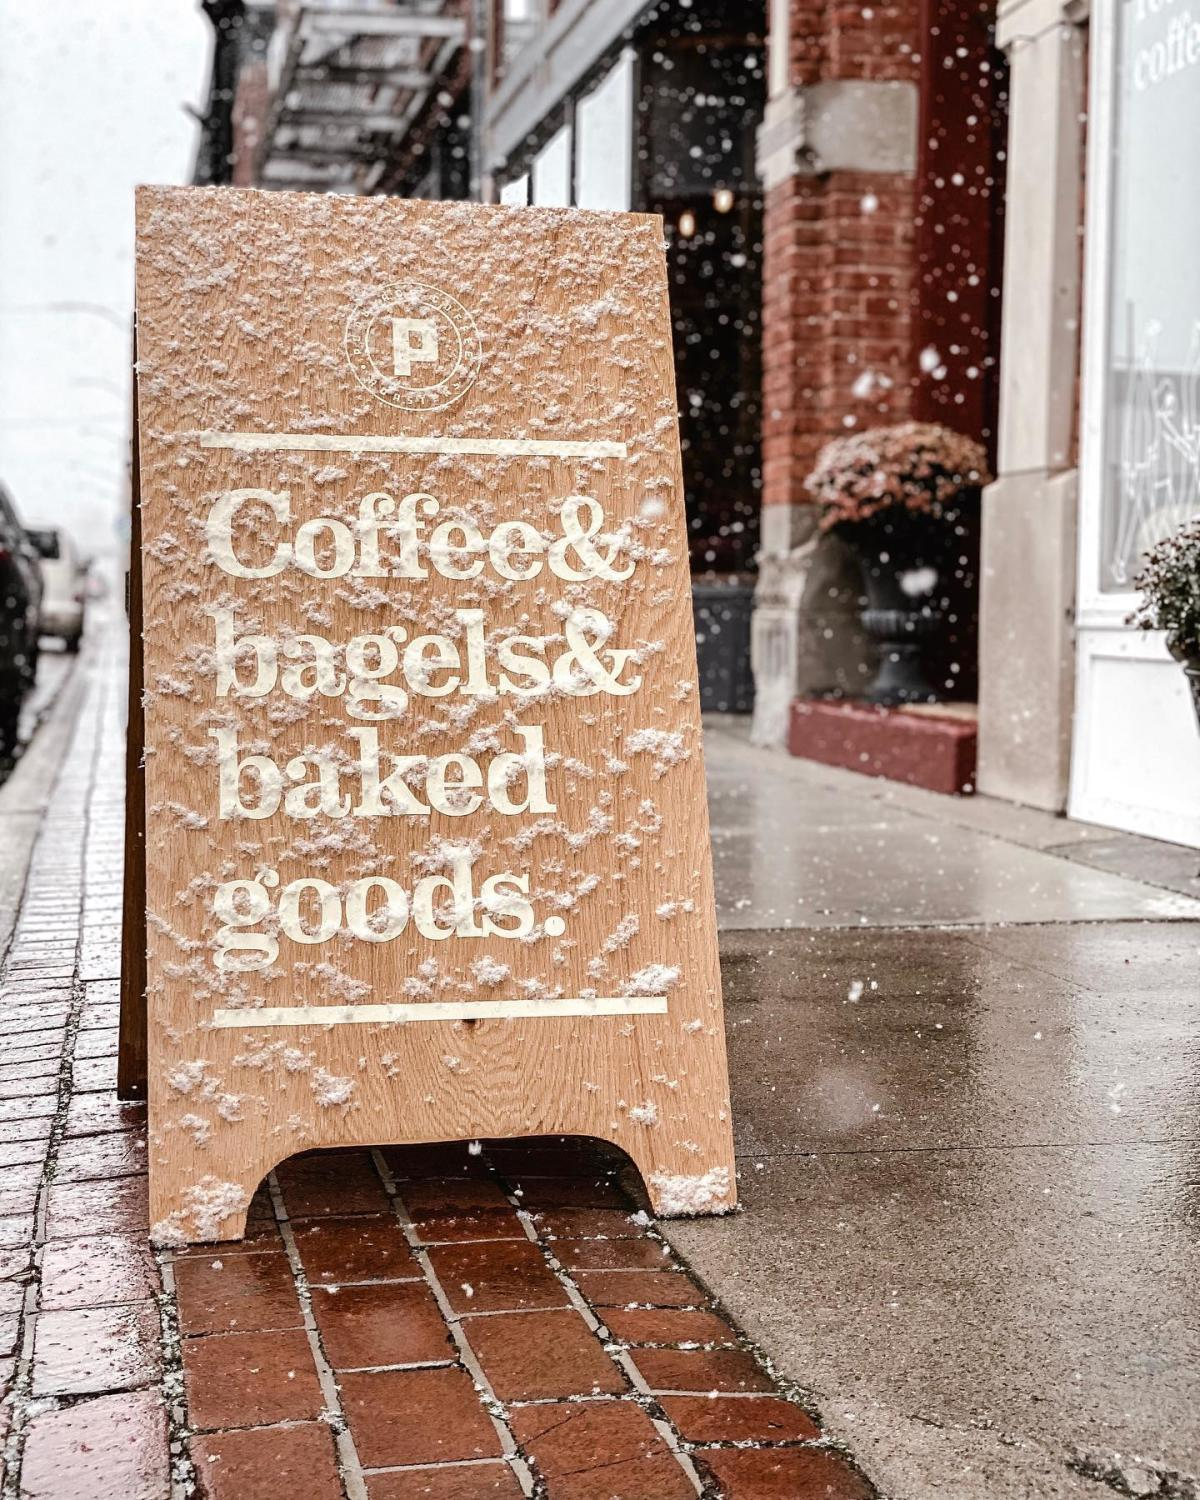 """Views of a sandwich board on the sidewalk that says """"Coffee & bagels & baked goods"""" with snow falling gently all around it at Populace Coffee in Bay City"""